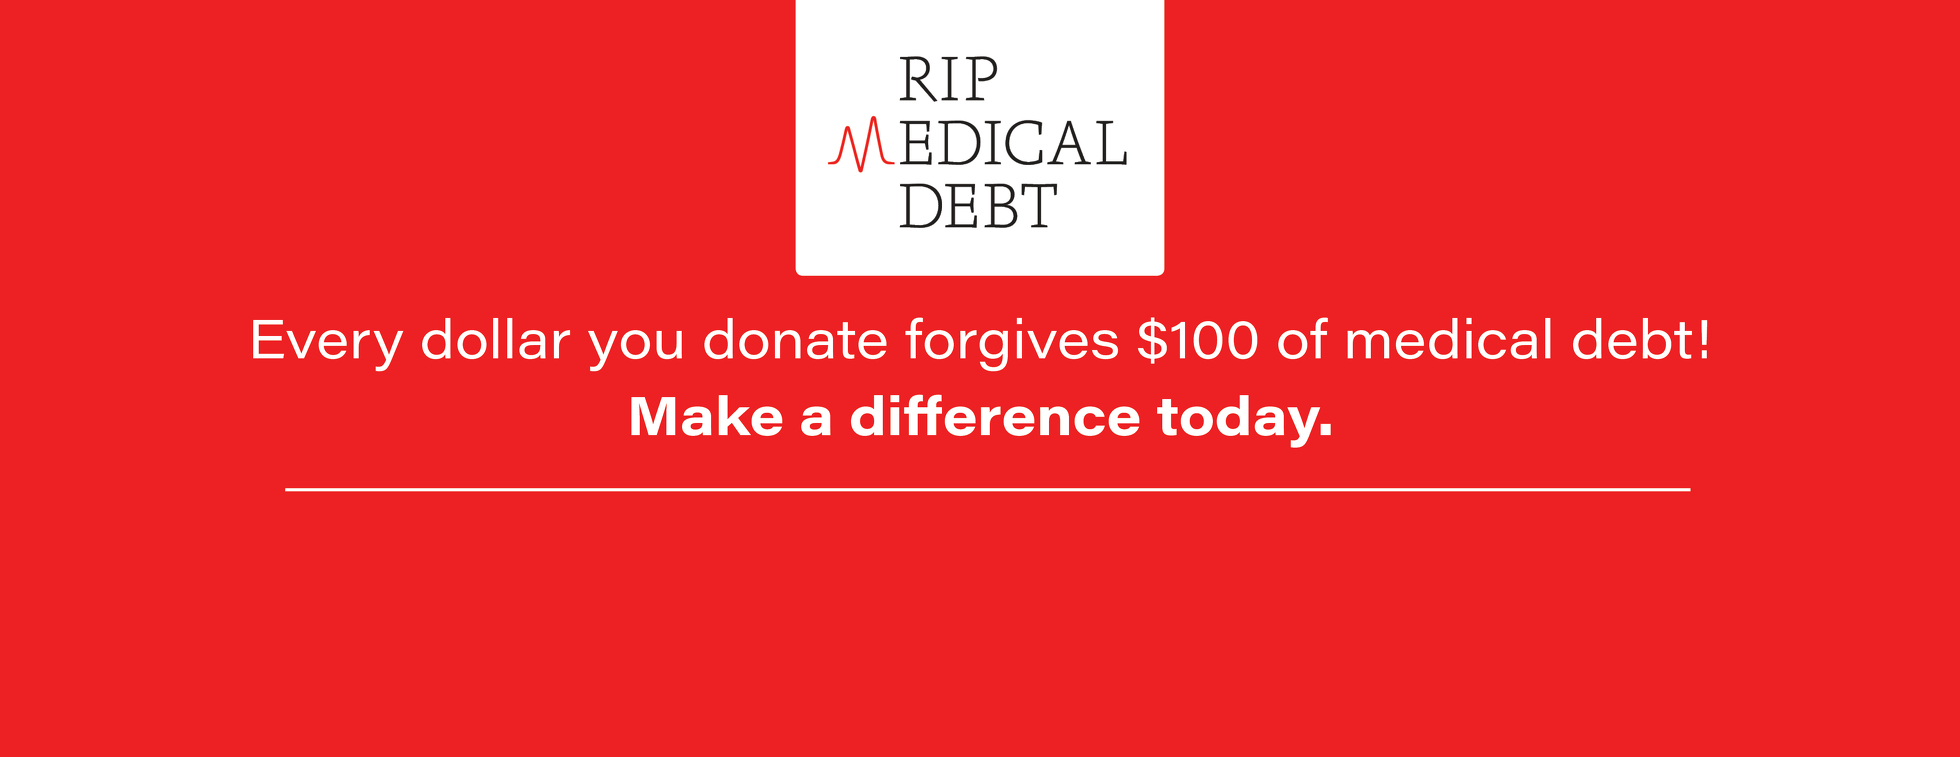 Campaign to Forgive $1.9M of Medical Debt in New Orleans